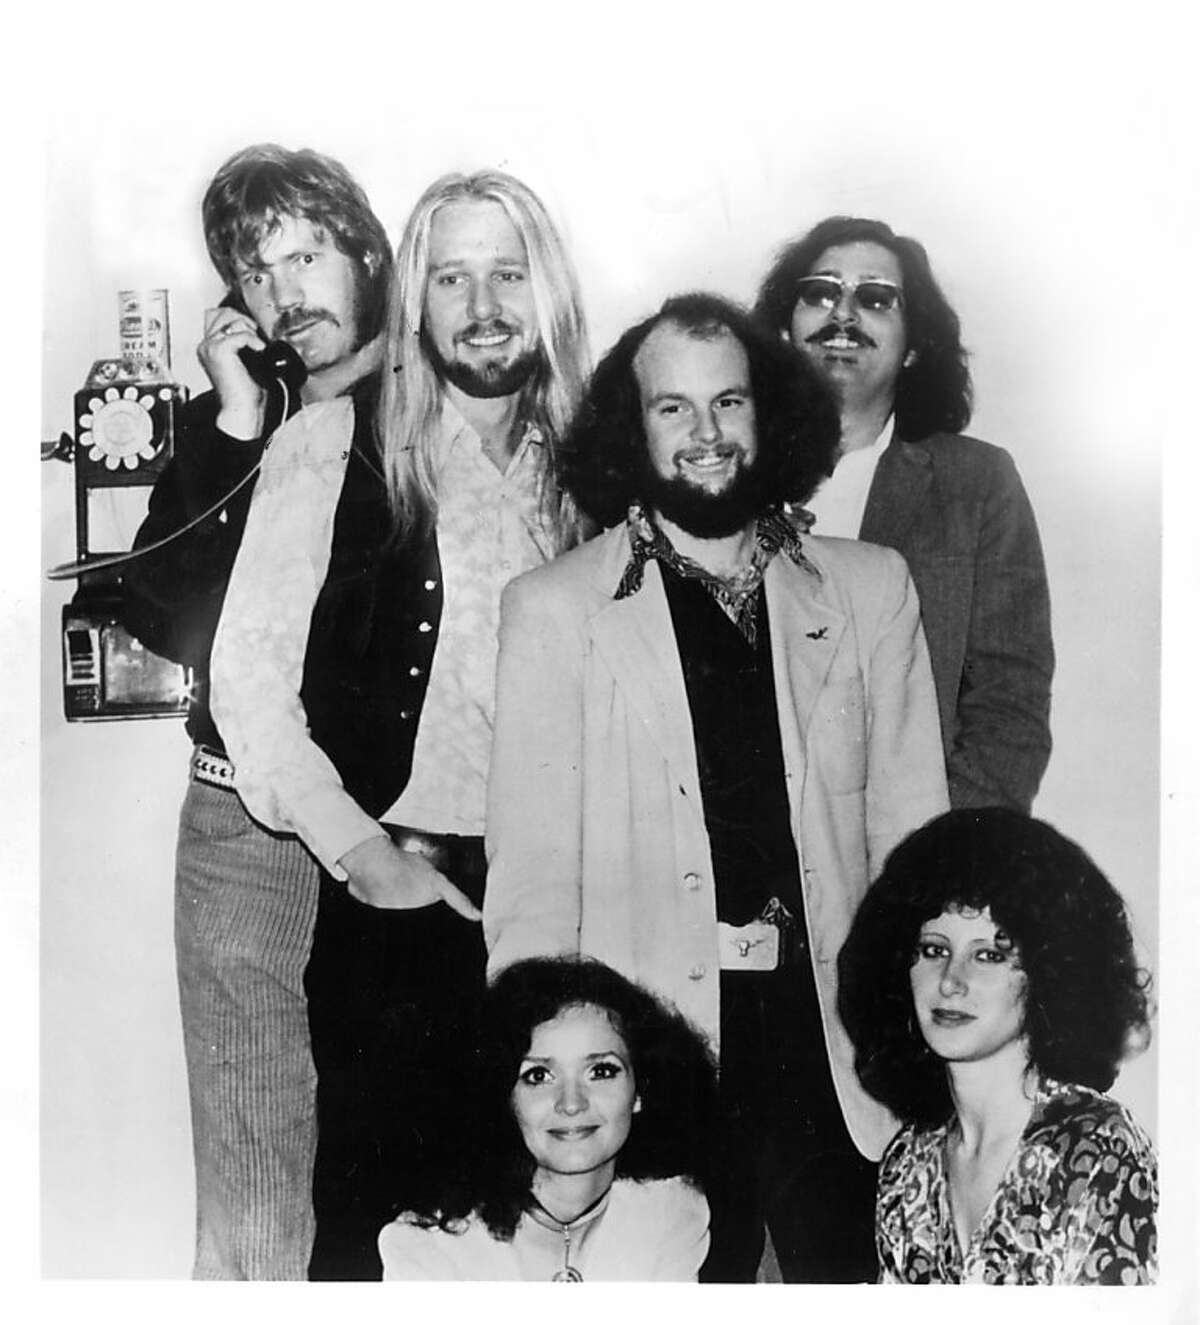 Music vocal Dan Hicks and His Hot Licks L to R: Hicks, Page, Girton, Jaime Leopold, (seated) Price, Eisenberg 1973 March